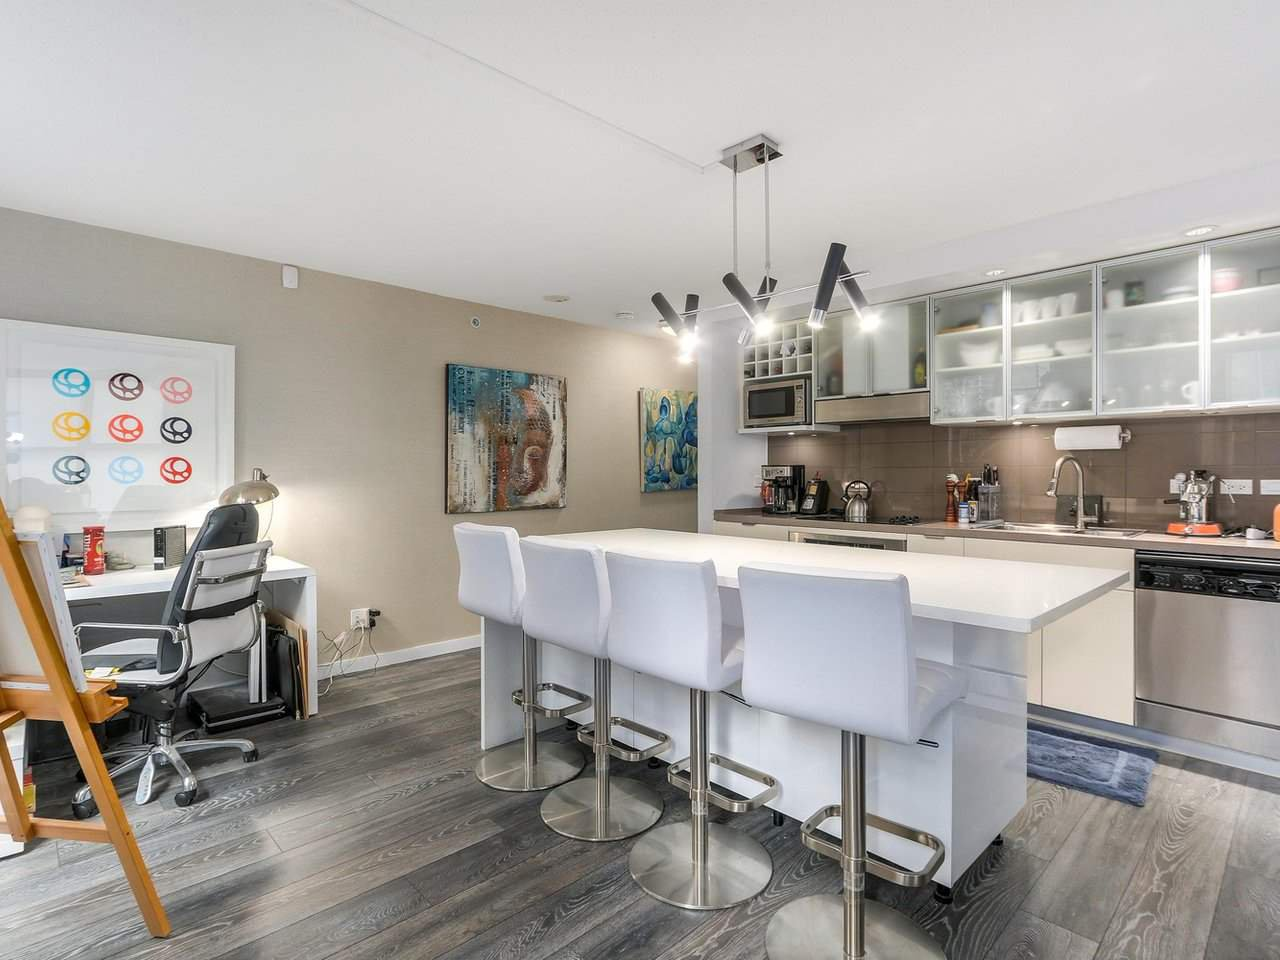 Photo 8: Photos: 217 168 POWELL Street in Vancouver: Downtown VE Condo for sale (Vancouver East)  : MLS®# R2386644